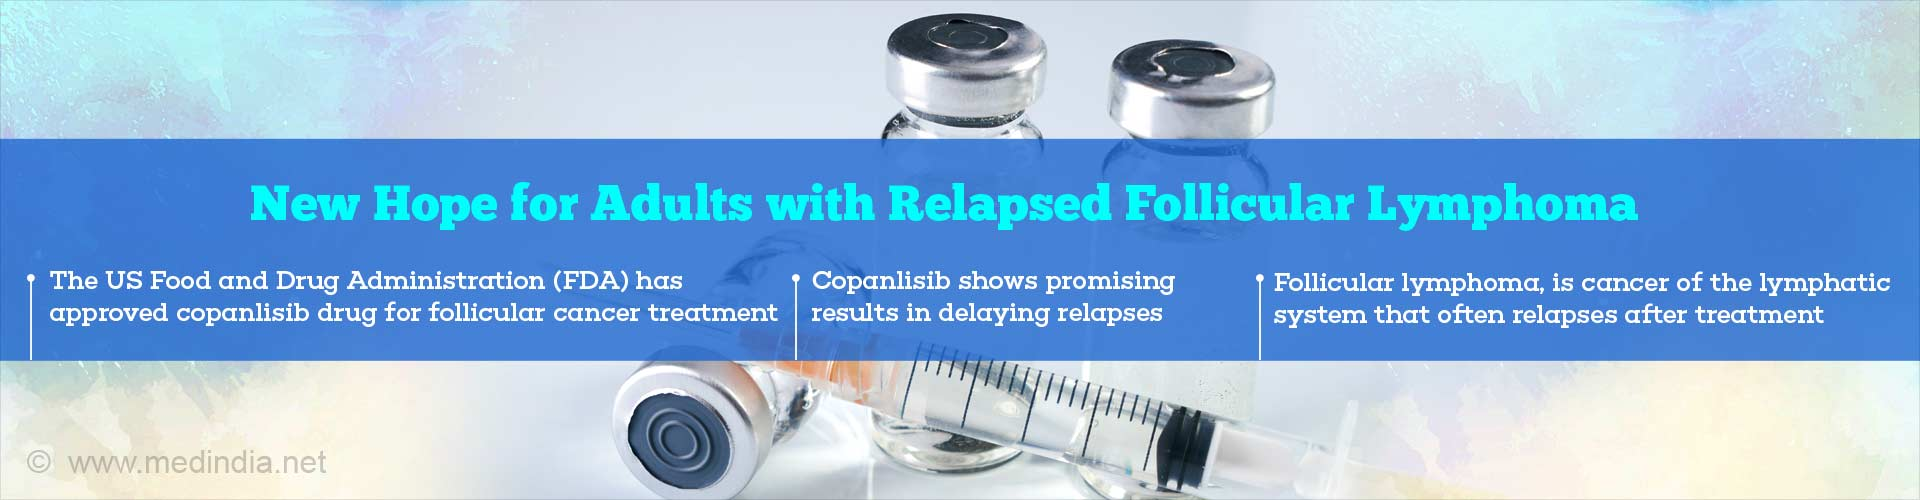 Copanlisib FDA-approved for Relapsed Follicular Lymphoma in Adults